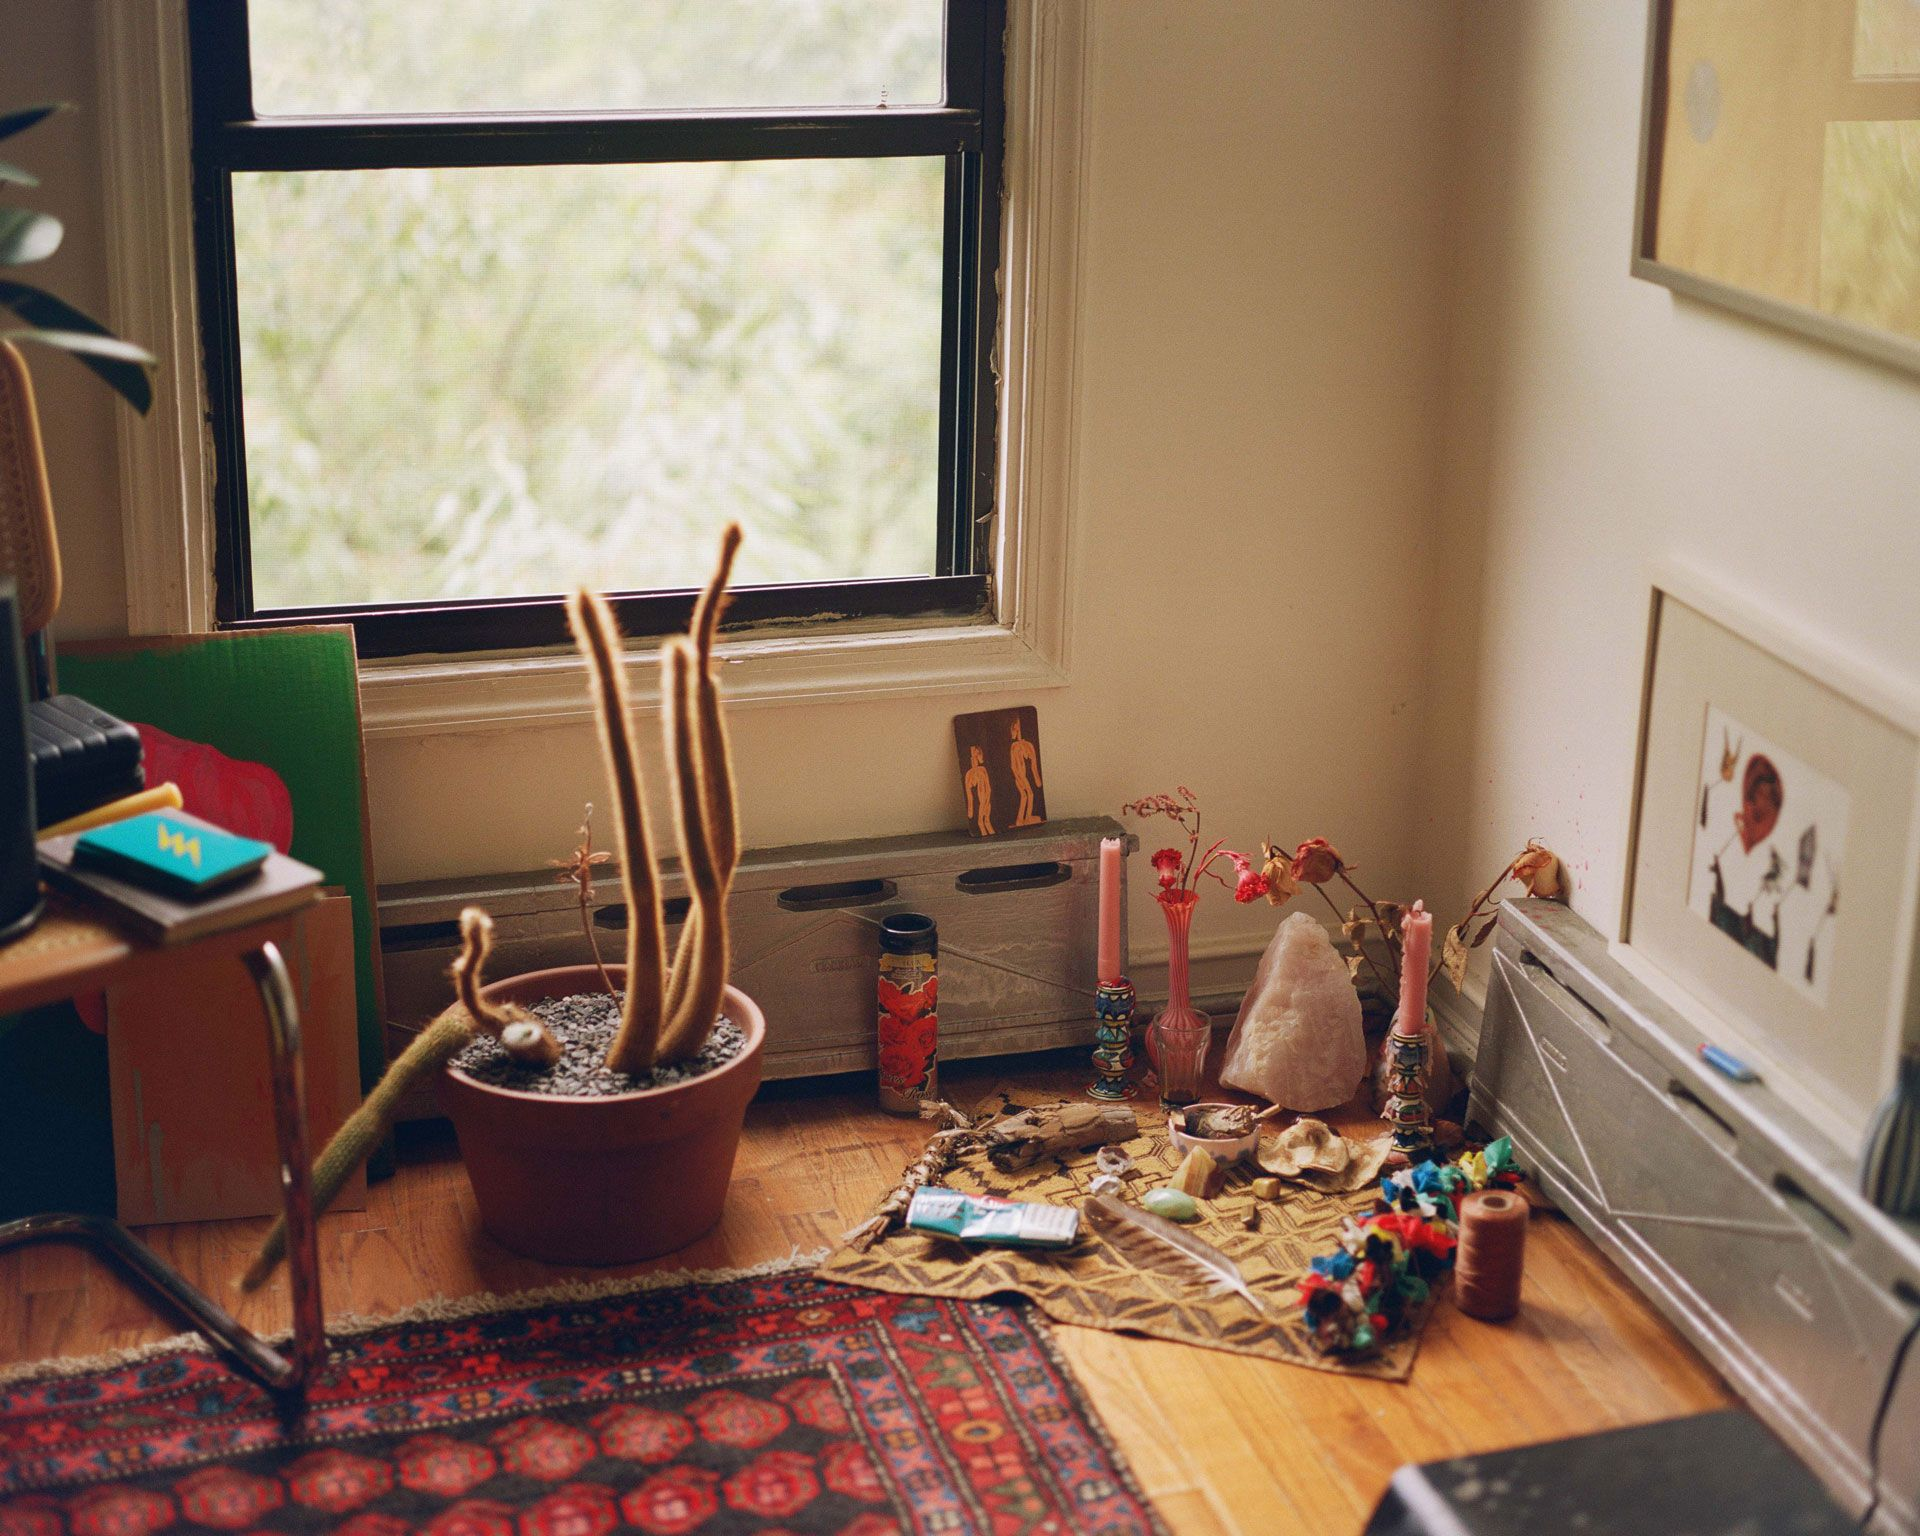 living room of writer Fariha Roisin displaying her altar on the ground filled with candles crystals and a feather photographed by Oumayma B. Tanfous for Levi's